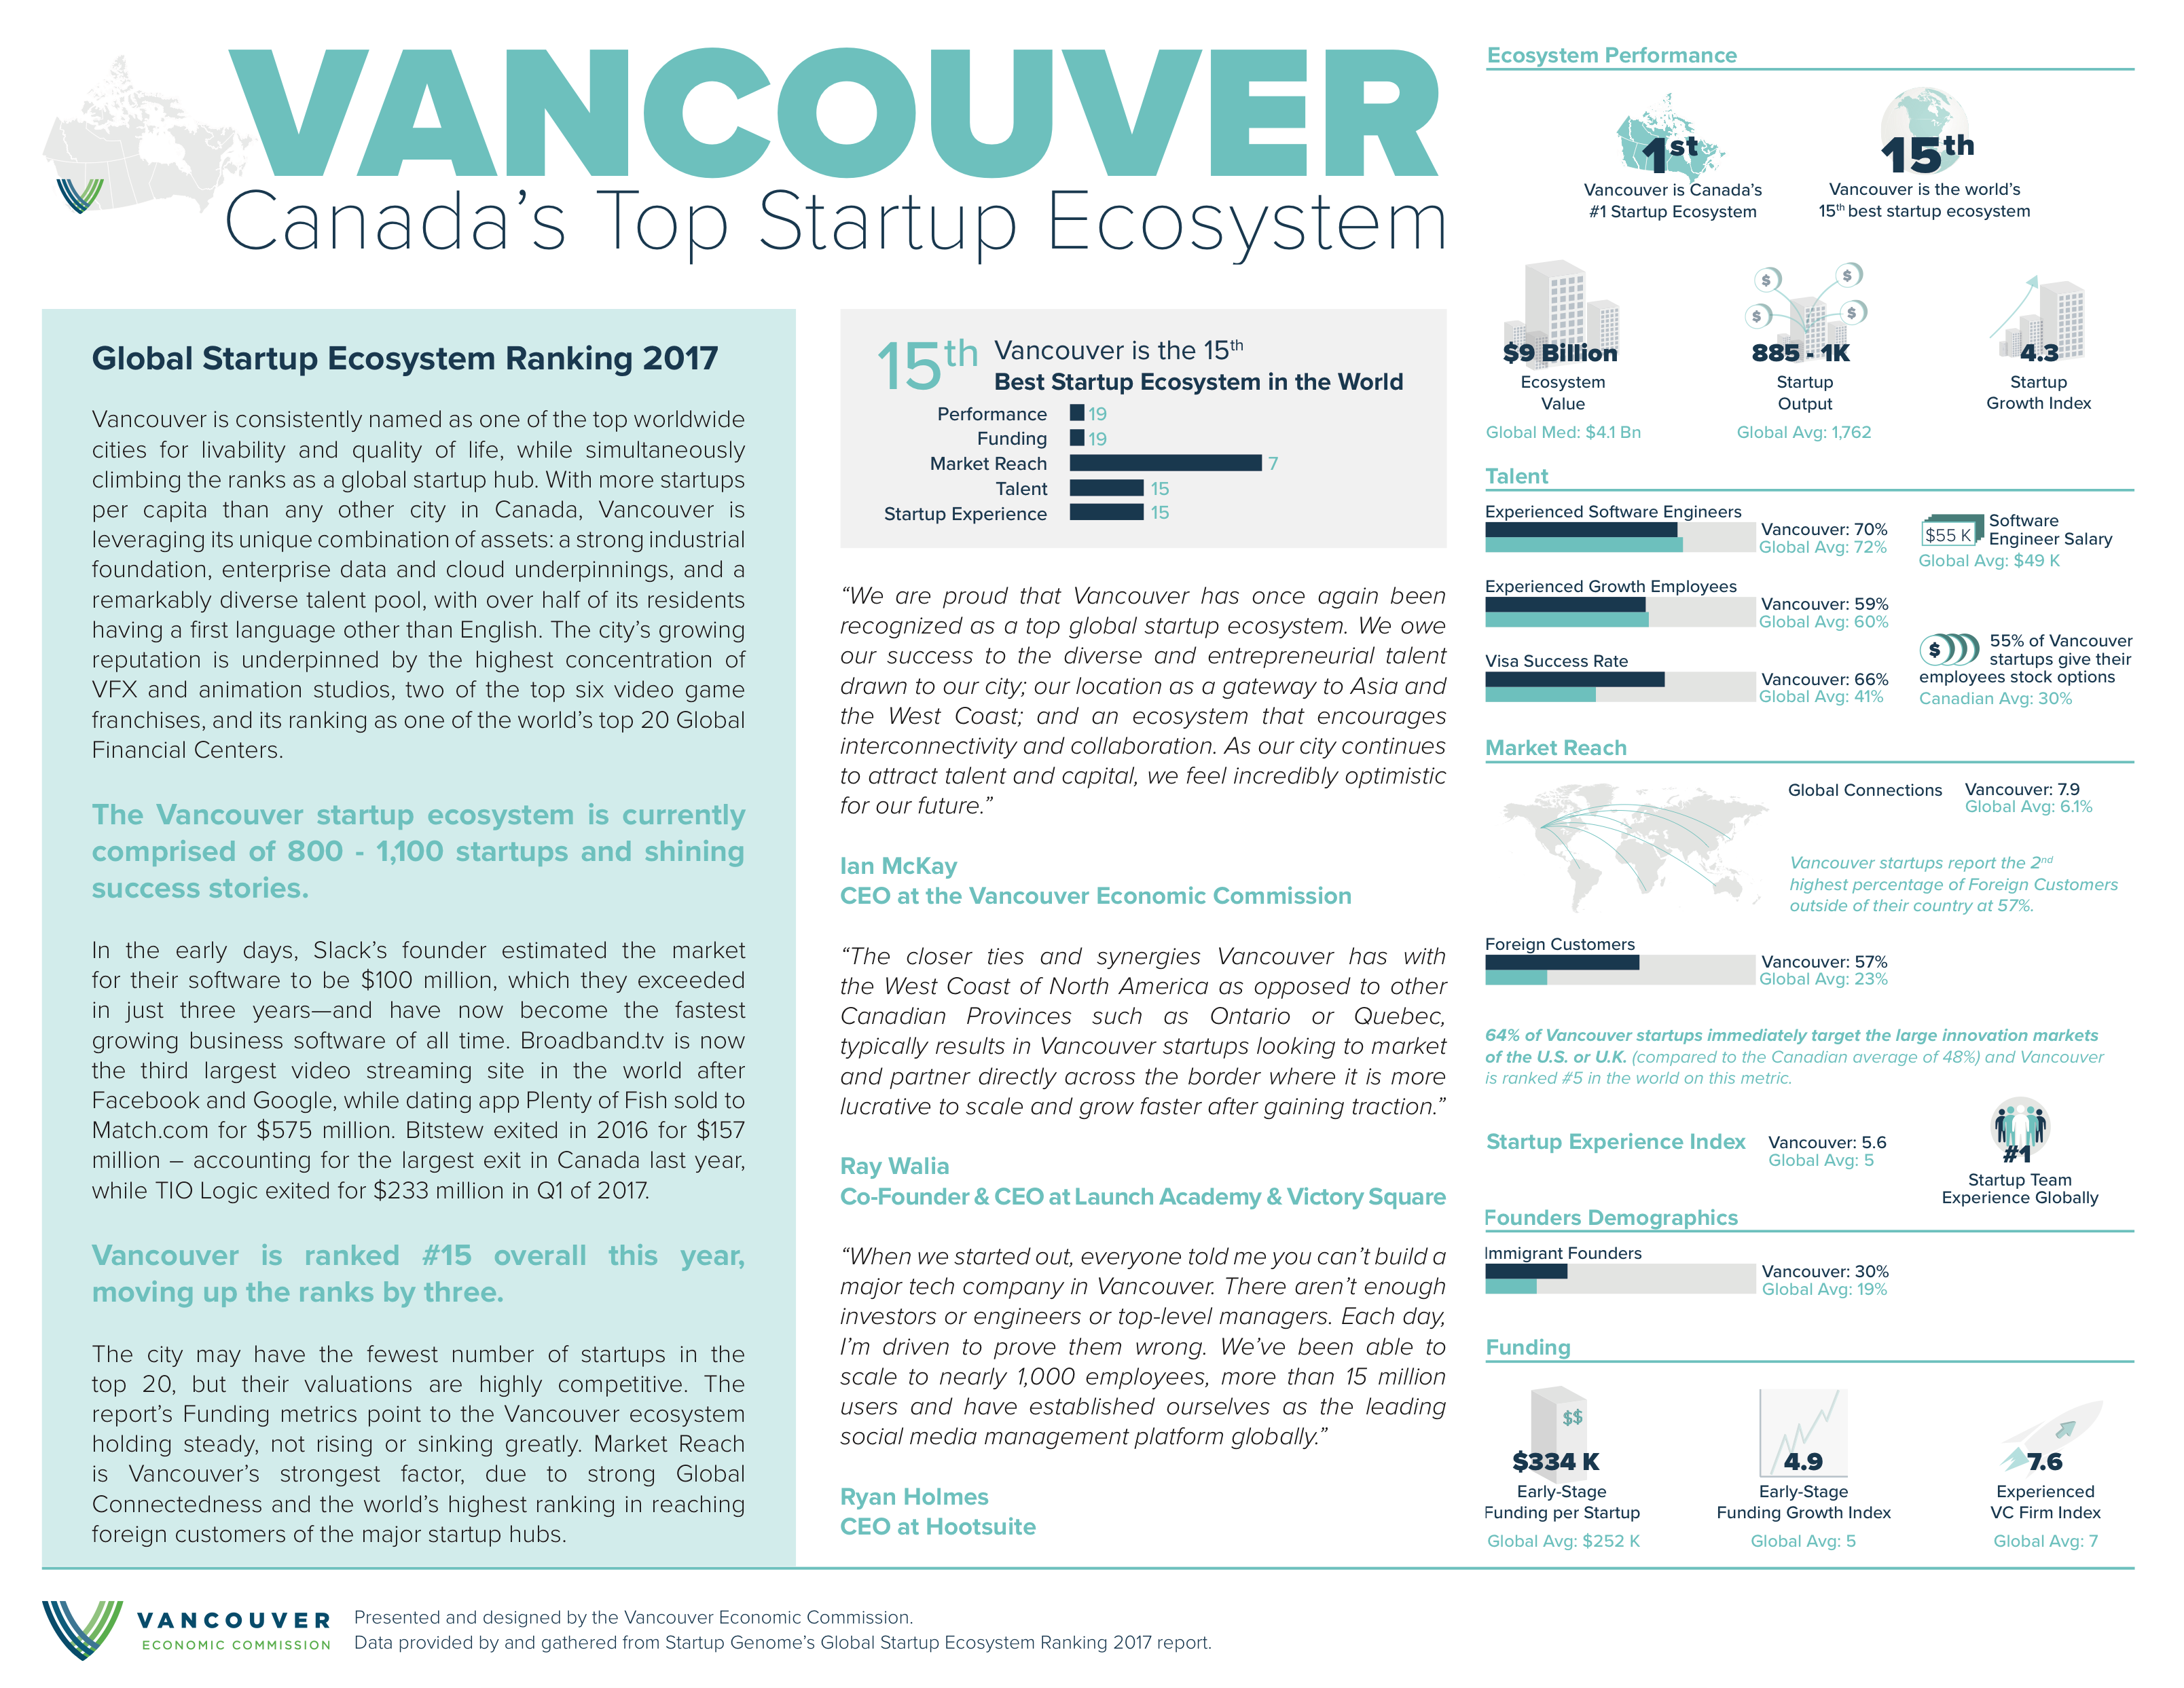 Vancouver is Canada's #1 Startup Ecosystem and 15th in the World - Infographic by the Vancouver Economic Commission - Data from Startup Genome 2017